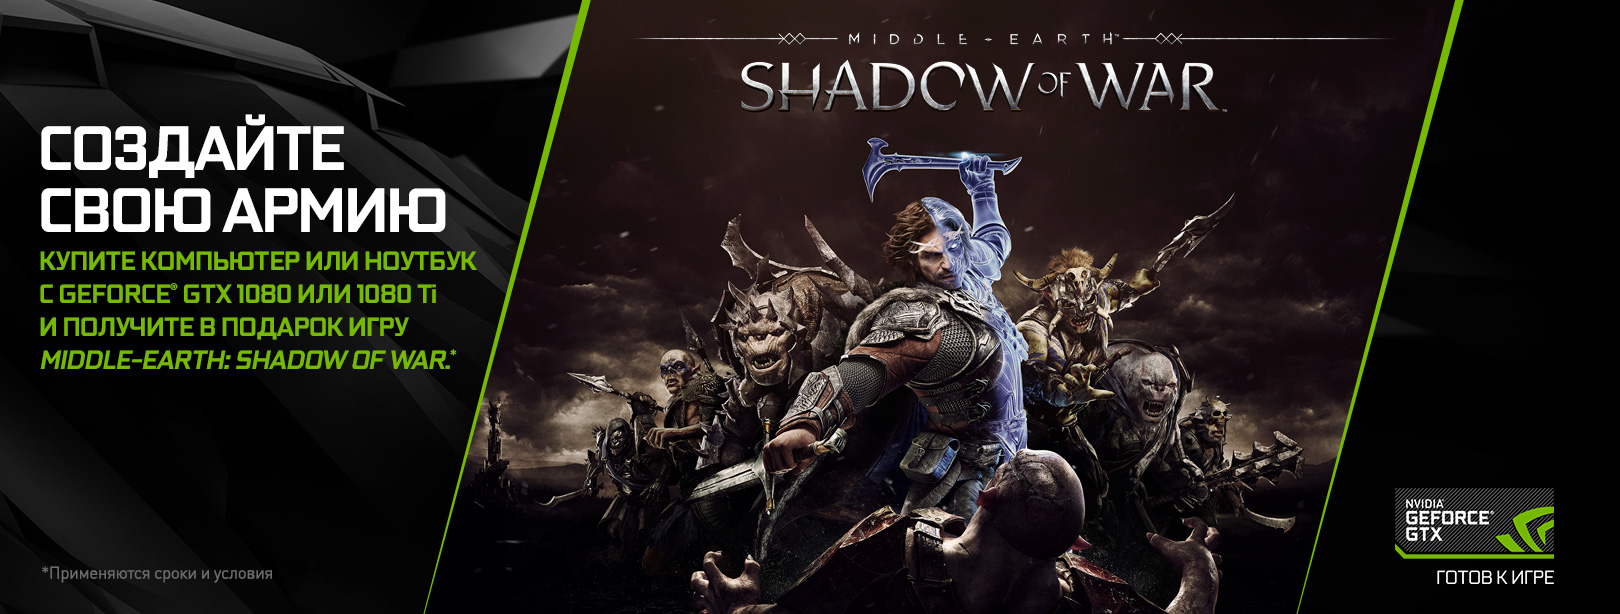 Купите компьютер или ноутбук  с GeForce® GTX 1080 или 1080 Ti  и получите игру  Middle-Earth: Shadow of War в подарок